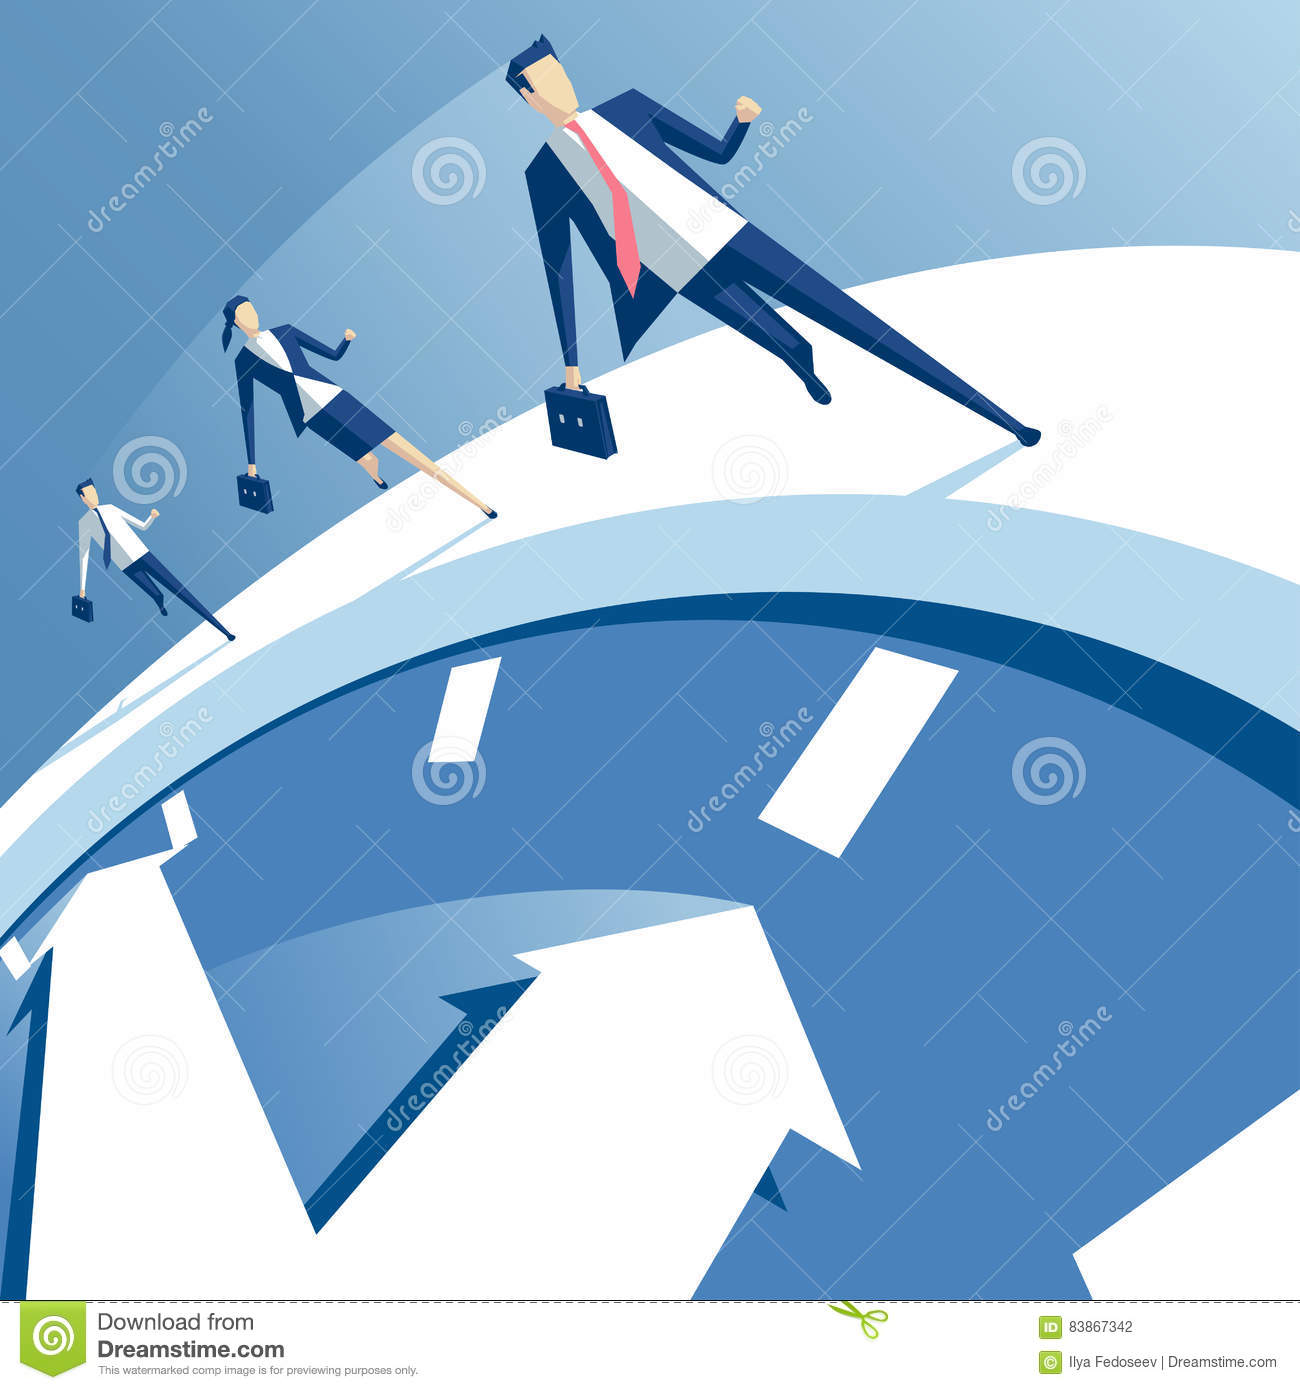 3686b85c Business people run on the white clock, businessmen try to outrun time.  business concept of time pressure and race against time vector illustration